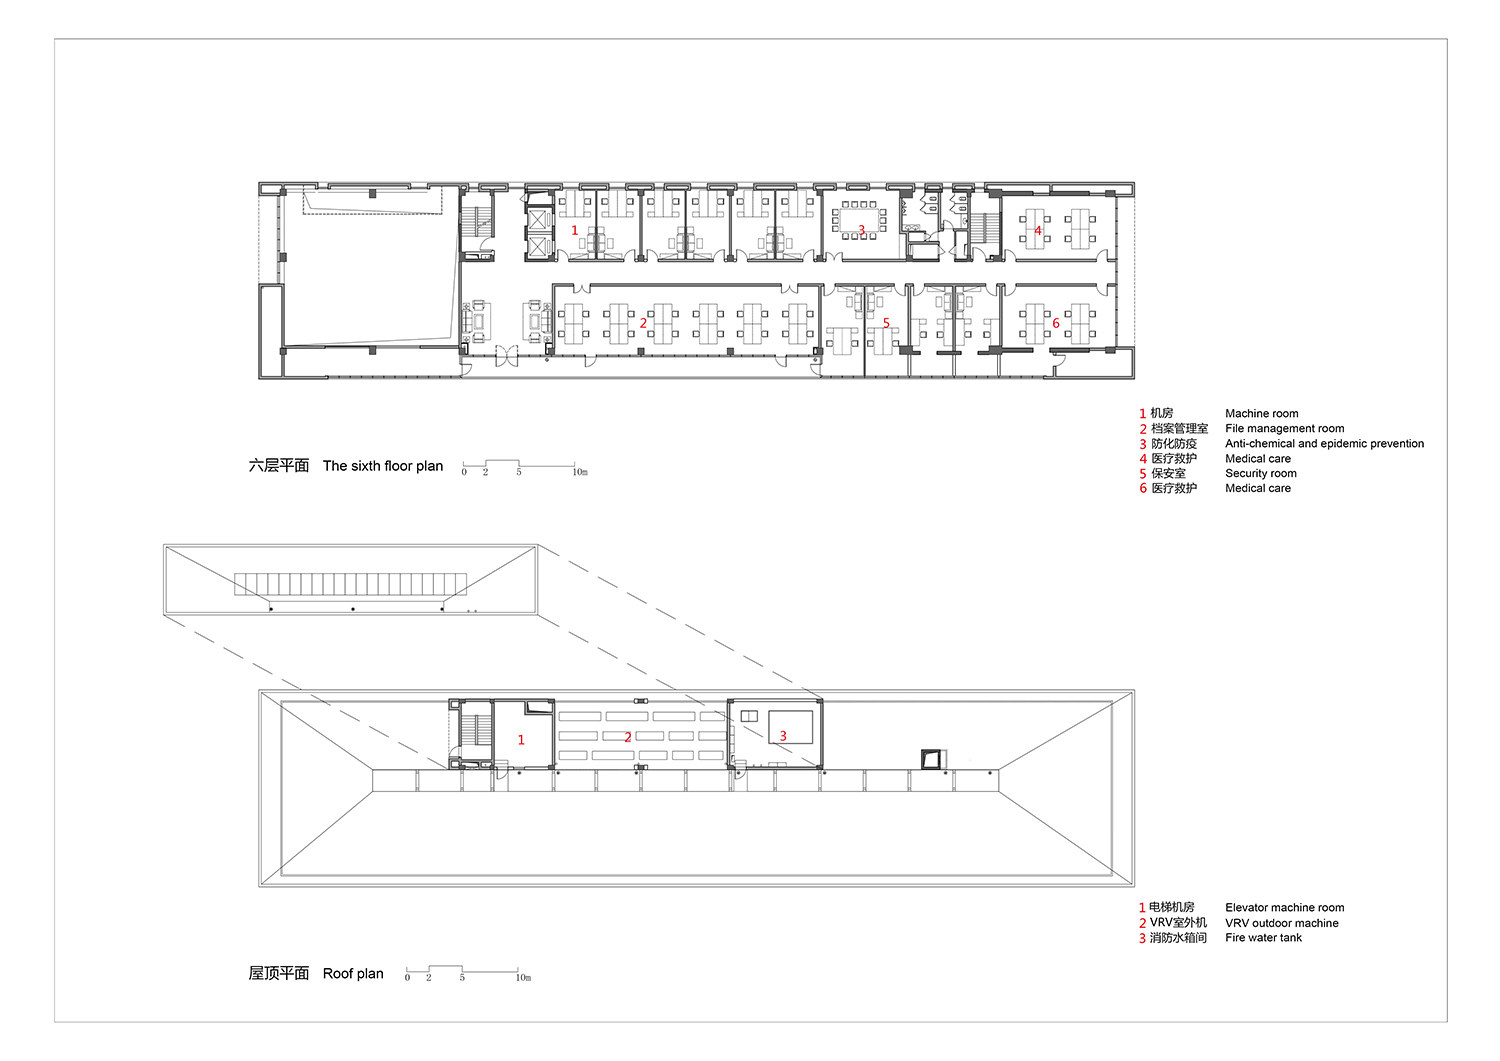 The-sixth-floor-plan-and-the-roof-plan the Architectural Design and Research Institute of Zhejiang University Co., Ltd}